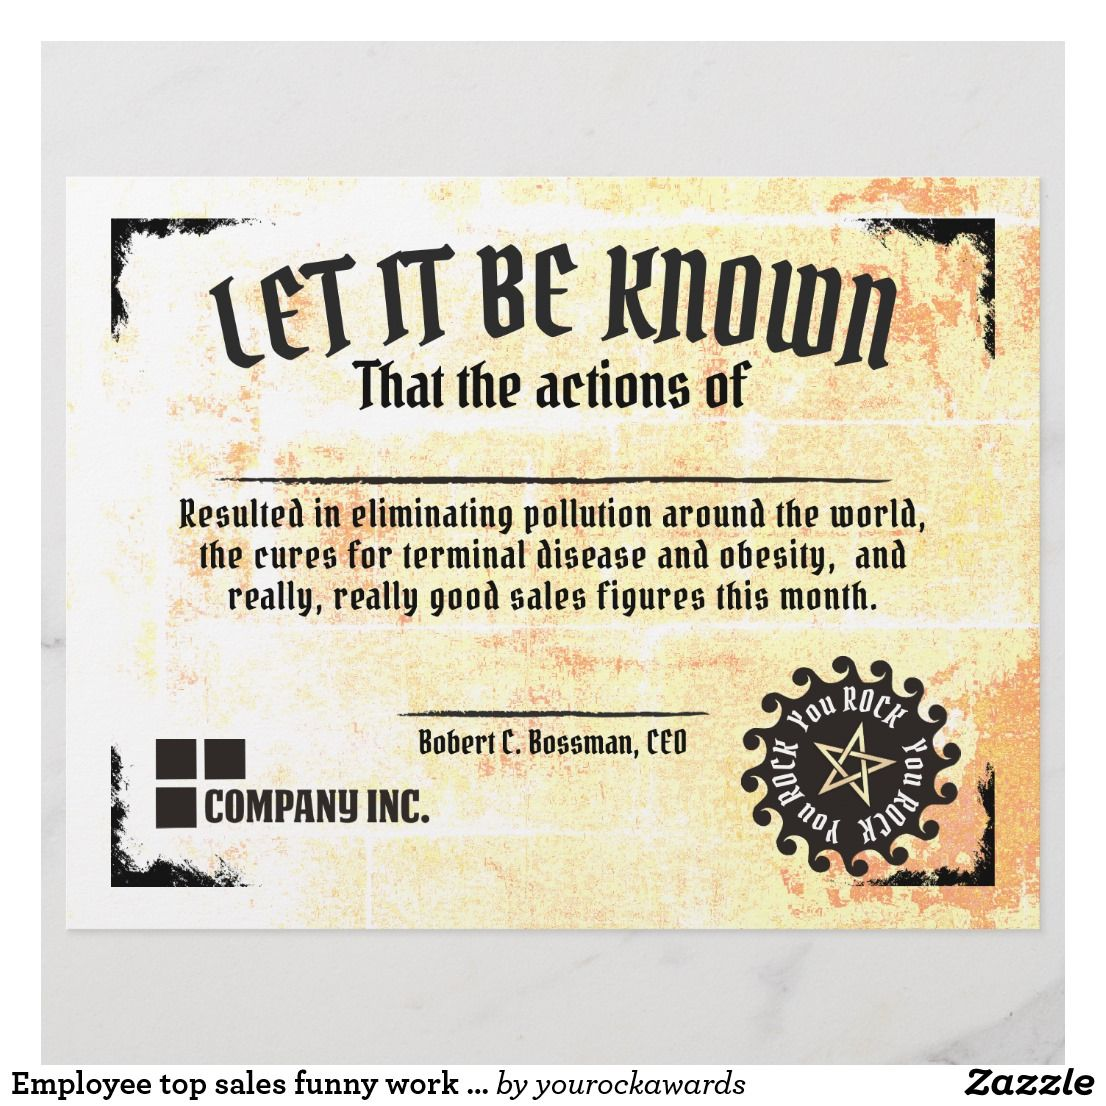 Employee Top Sales Funny Work Certificate Award Zazzle Com In 2021 Work Humor Funny Awards Funny Employee Awards Funny employee of the month certificate